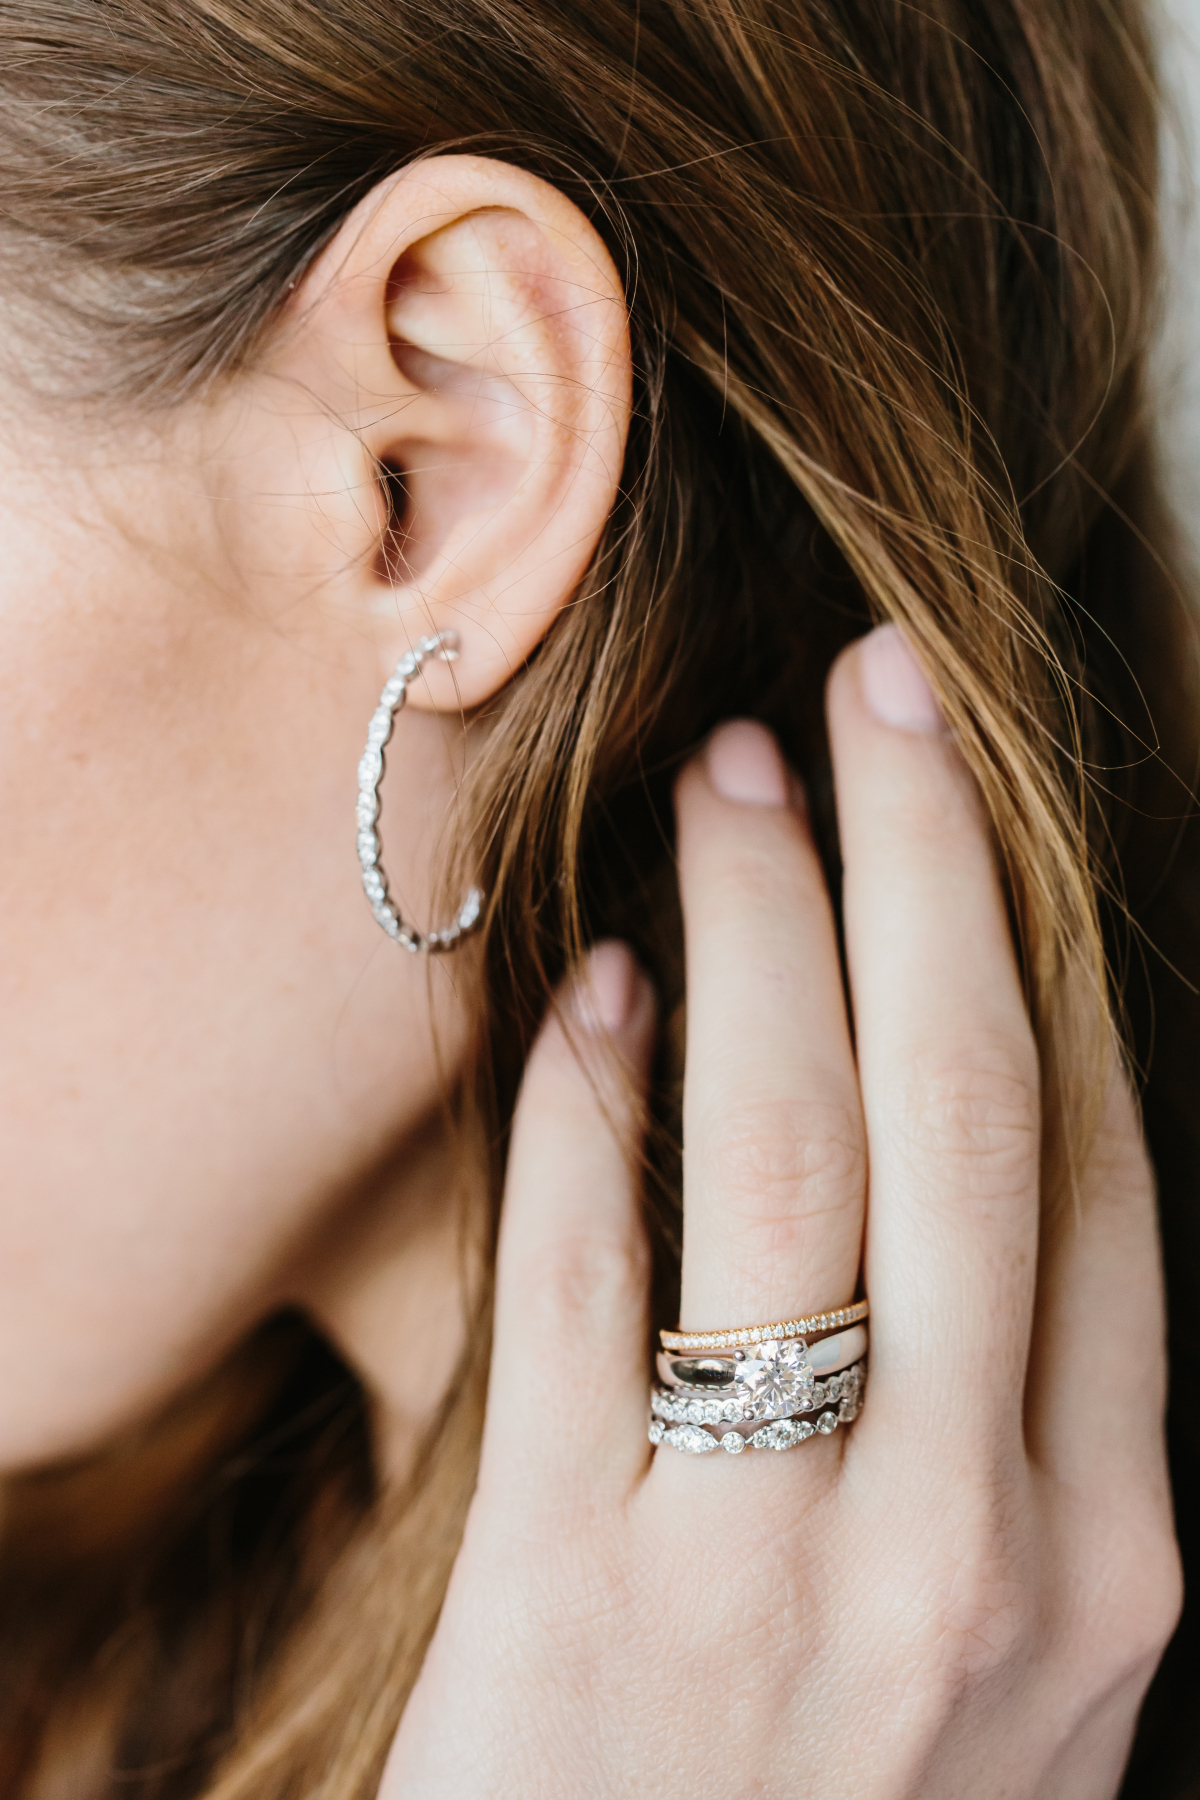 Choose From A Wide Variety Of Tacori Fine Jewelry From Engagement